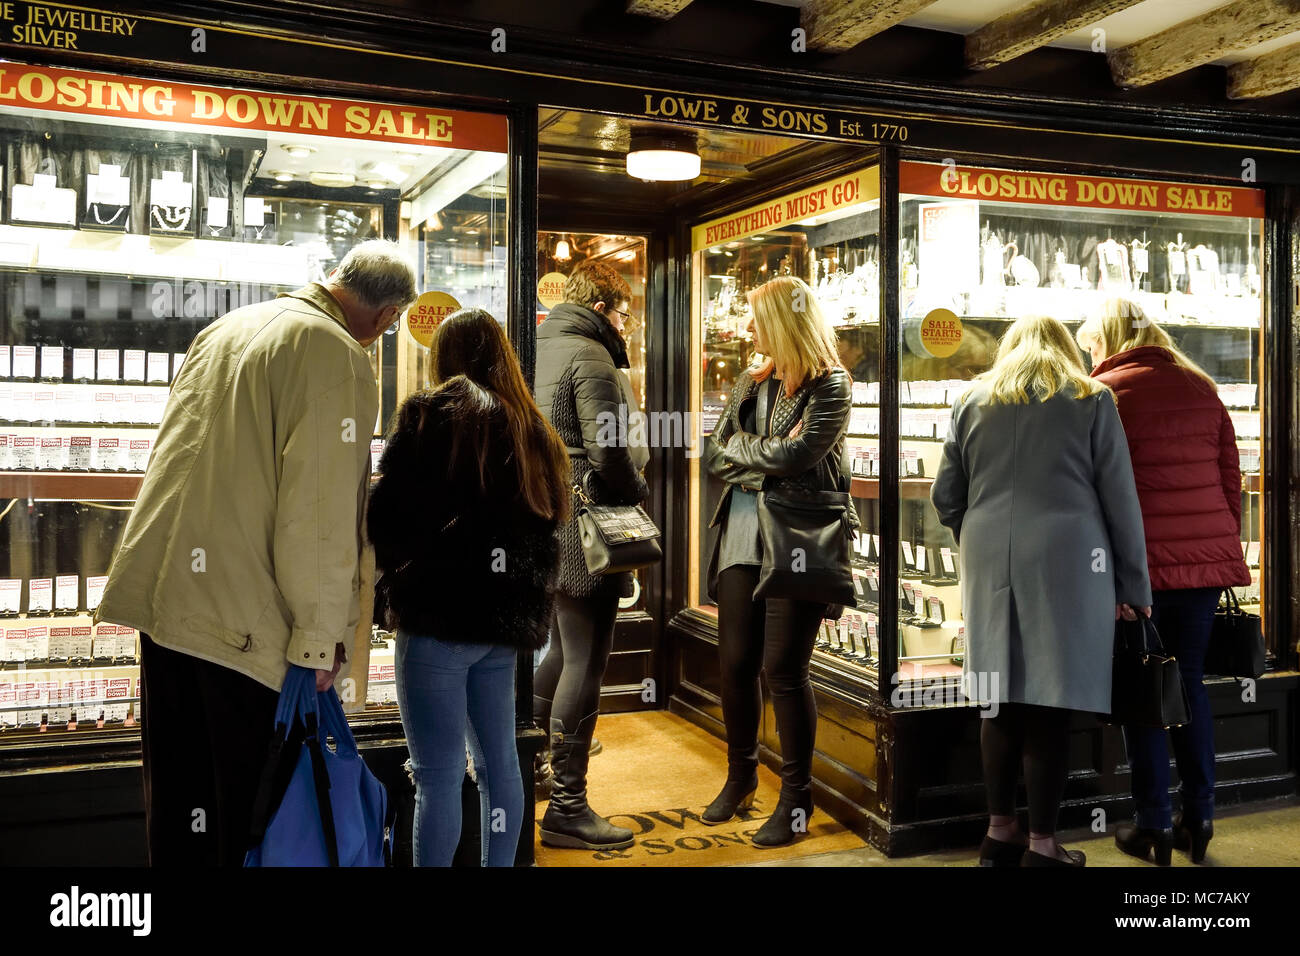 Chester, UK. 13th April 2018. People window shopping at Lowe and Sons jewellery shop on Bridge Street Row. A 50% closing down sale starts at 10am tomorrow, Saturday 14th April. The company has been trading for 248 years and is thought to be the second oldest independent jewellers in the country and the oldest shop still trading in Chester. They have been at their current location since 1804. Credit: Andrew Paterson/Alamy Live News - Stock Image